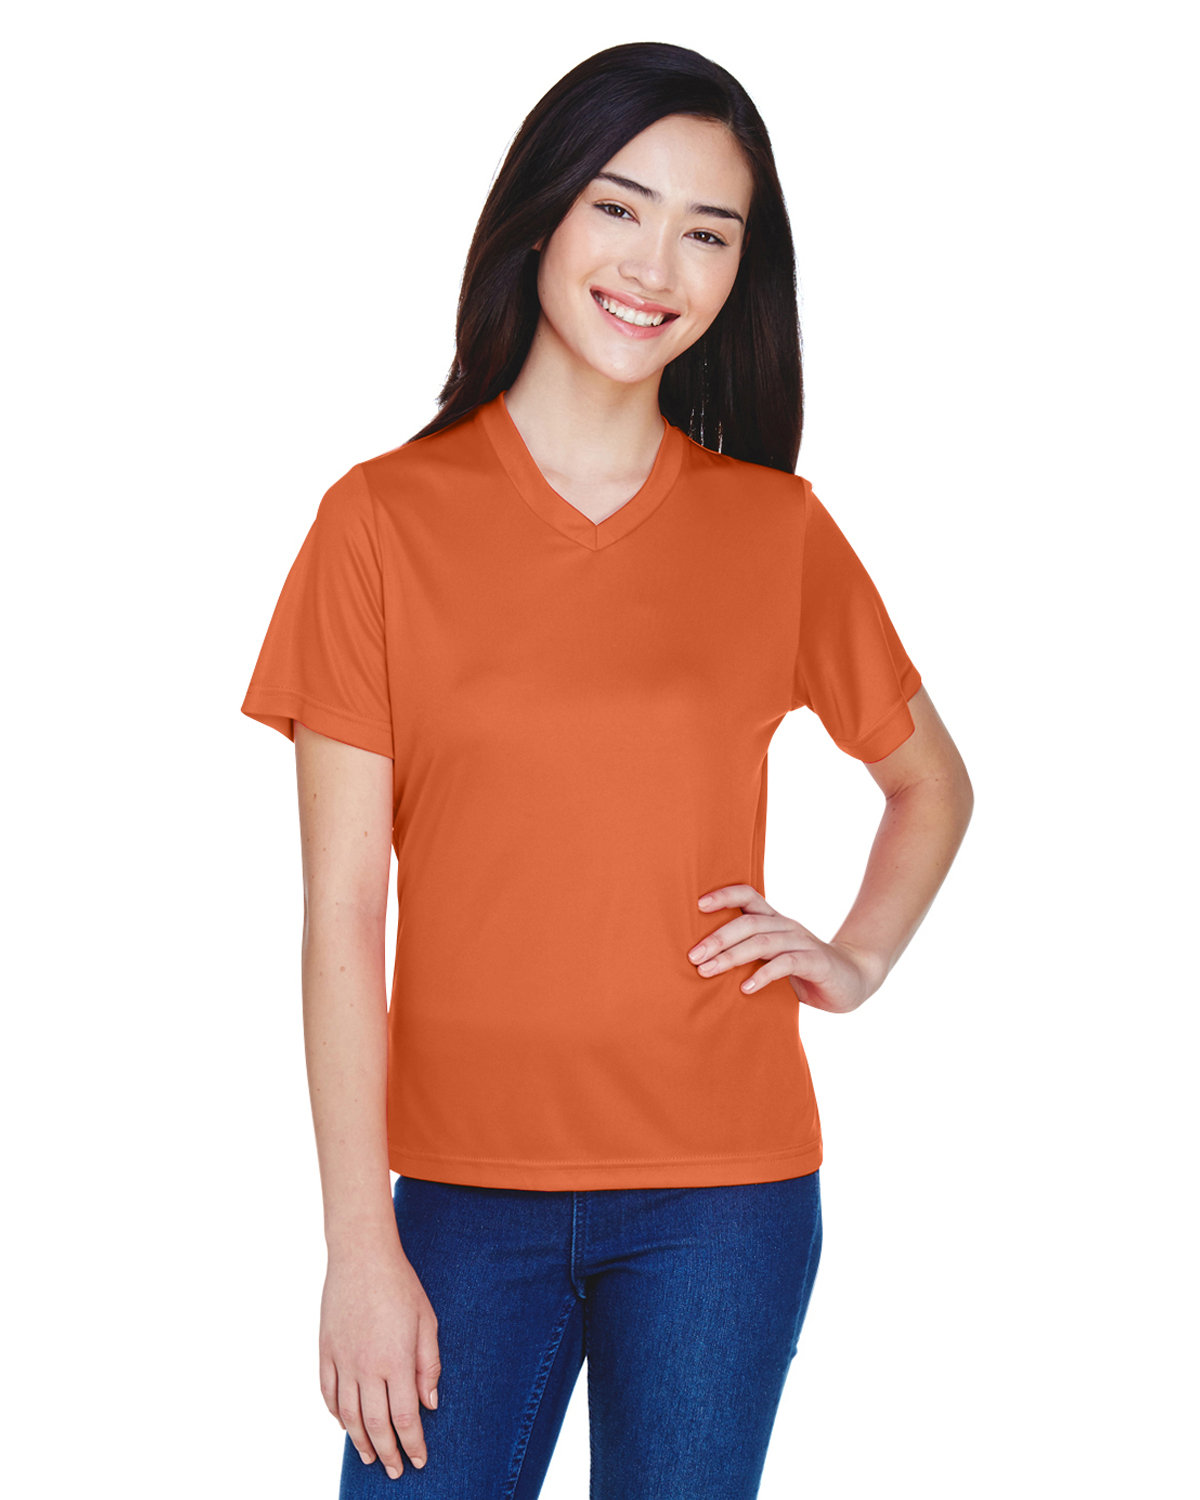 Team 365 Ladies' Zone Performance T-Shirt SPRT BRNT ORANGE